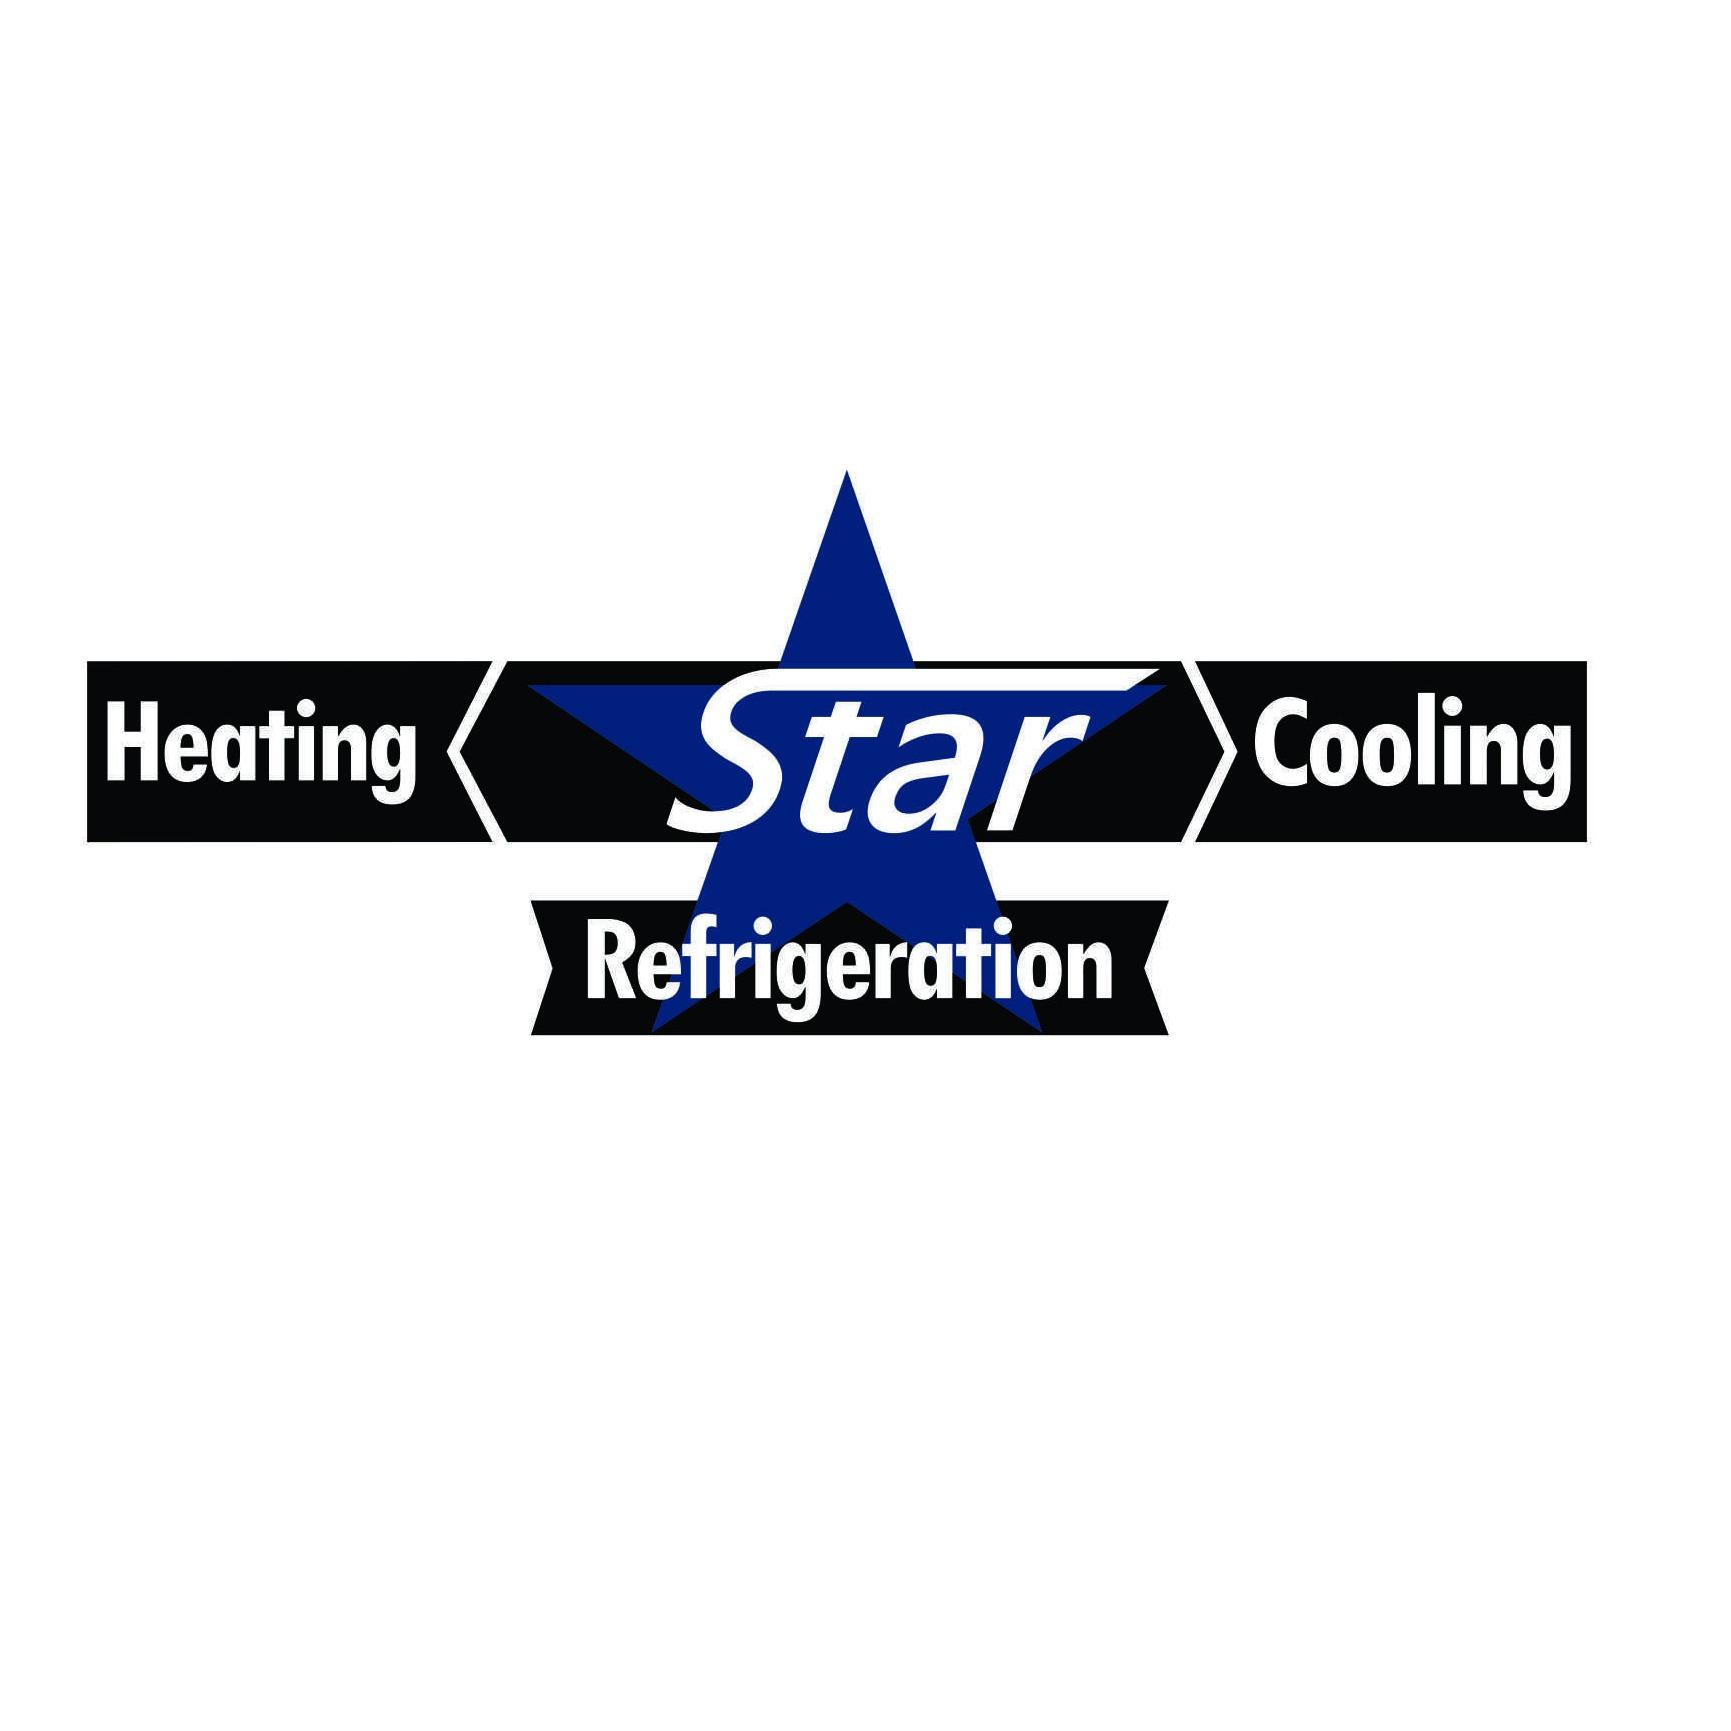 Star Refrigeration Heating & Cooling